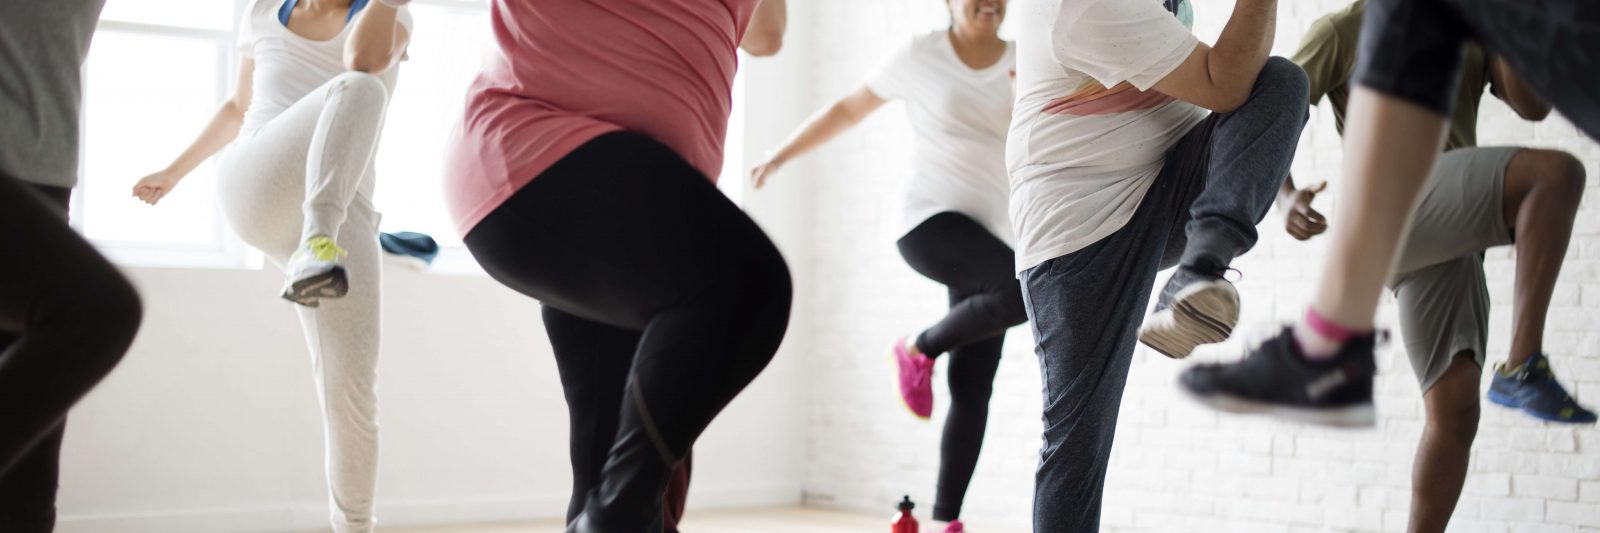 HIIt corporate exercise class